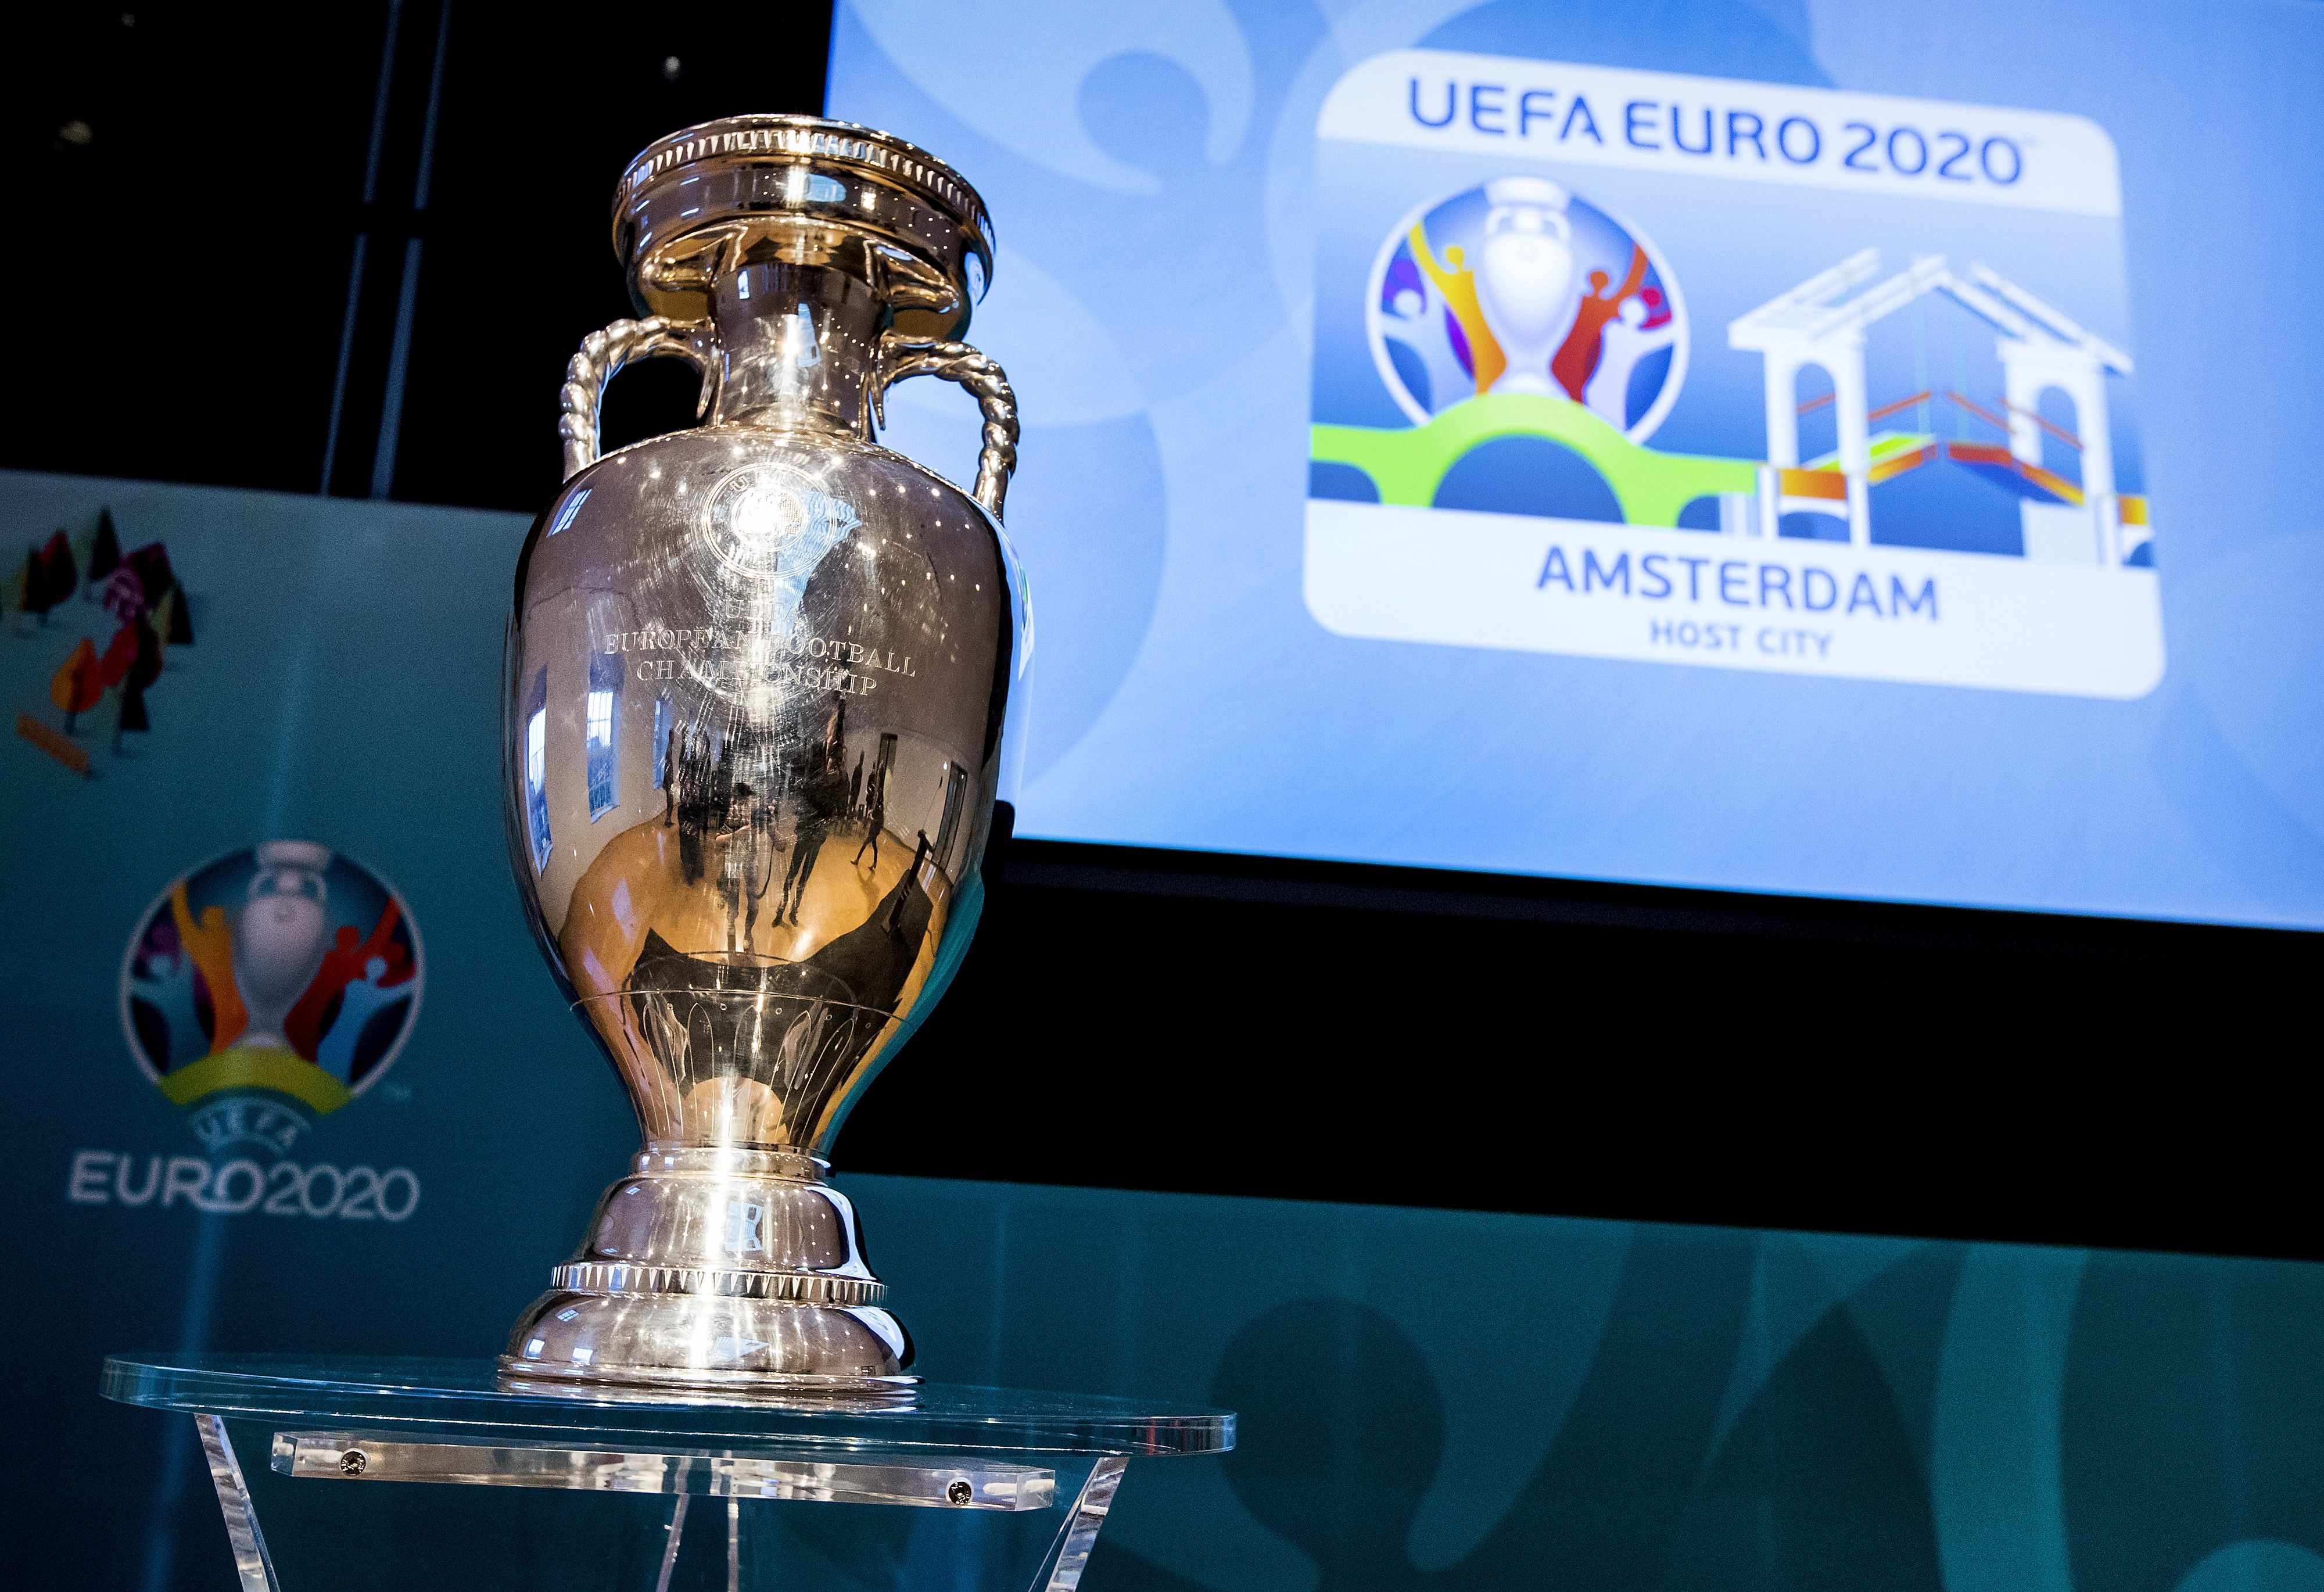 A picture taken on December 16, 2016 shows the EURO 2020 UEFA European Championship trophy during the launch of the Amsterdam's logo for the EURO 2020 UEFA European Championship football tournament in Amsterdam. The EURO 2020 UEFA European Championship will be held in thirteen cities in thirteen different European countries during the summer of 2020, with the semi-finals and final staged at Wembley stadium in London on July 2020. / AFP / ANP / Koen van Weel / Netherlands OUT        (Photo credit should read KOEN VAN WEEL/AFP/Getty Images)